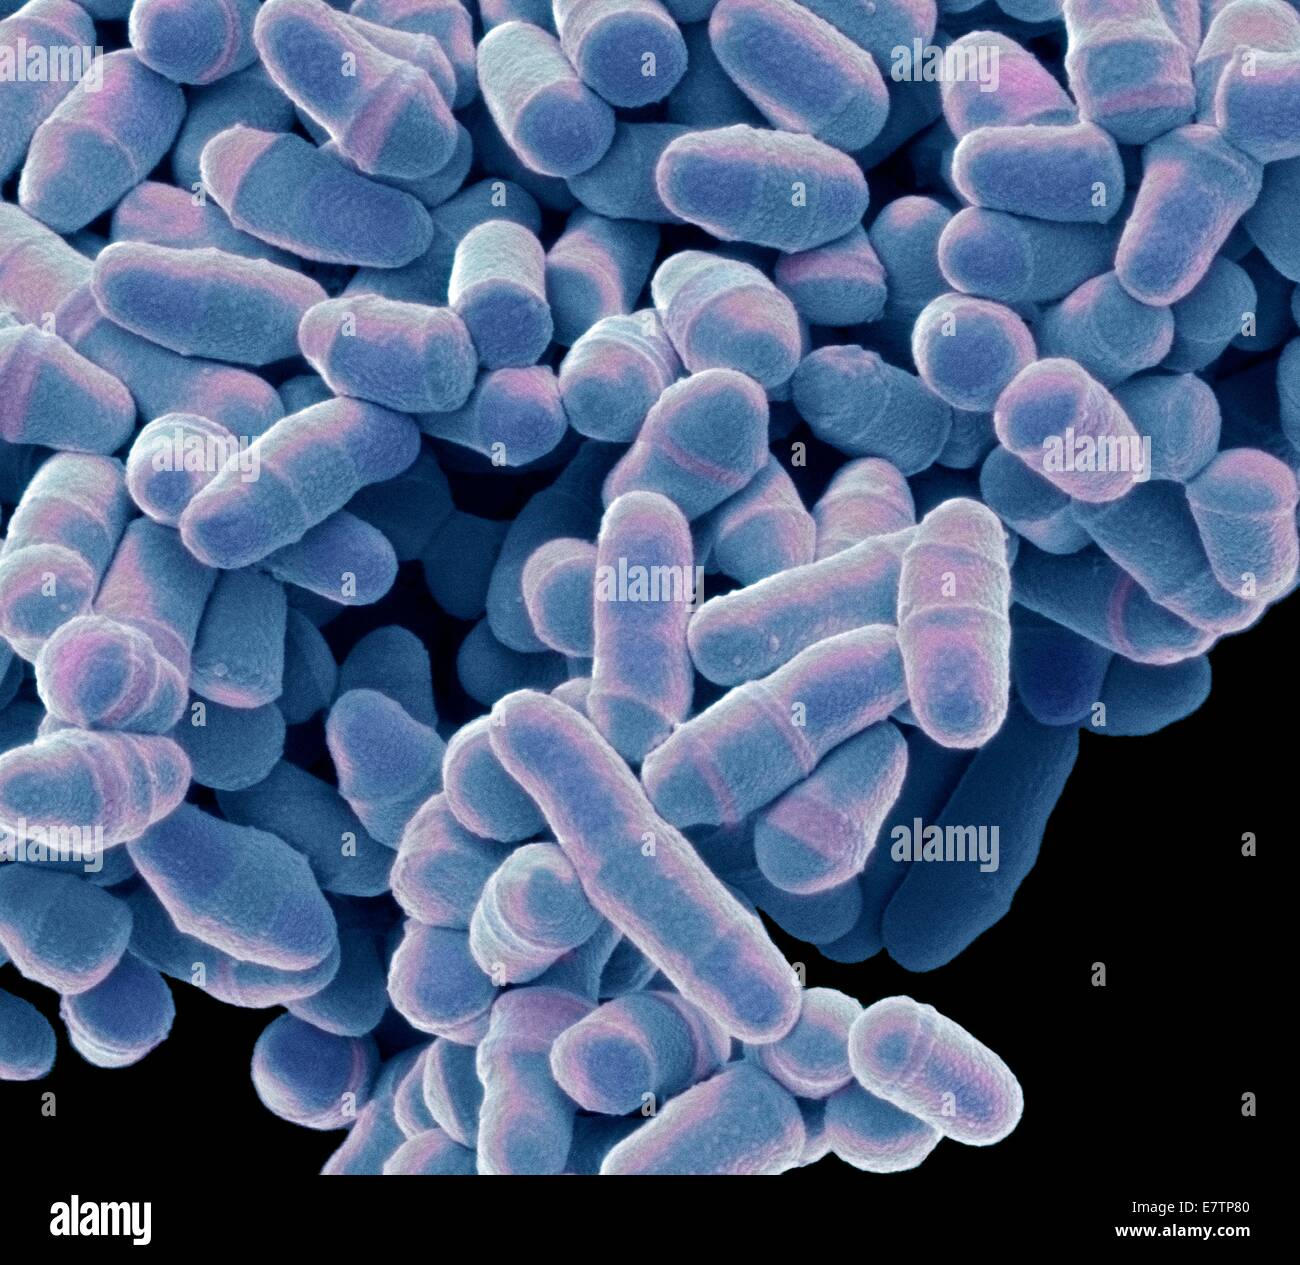 Coloured scanning electron micrograph (SEM) of Schizosaccharomyces pombe yeast. S. pombe is a single-celled fungus - Stock Image